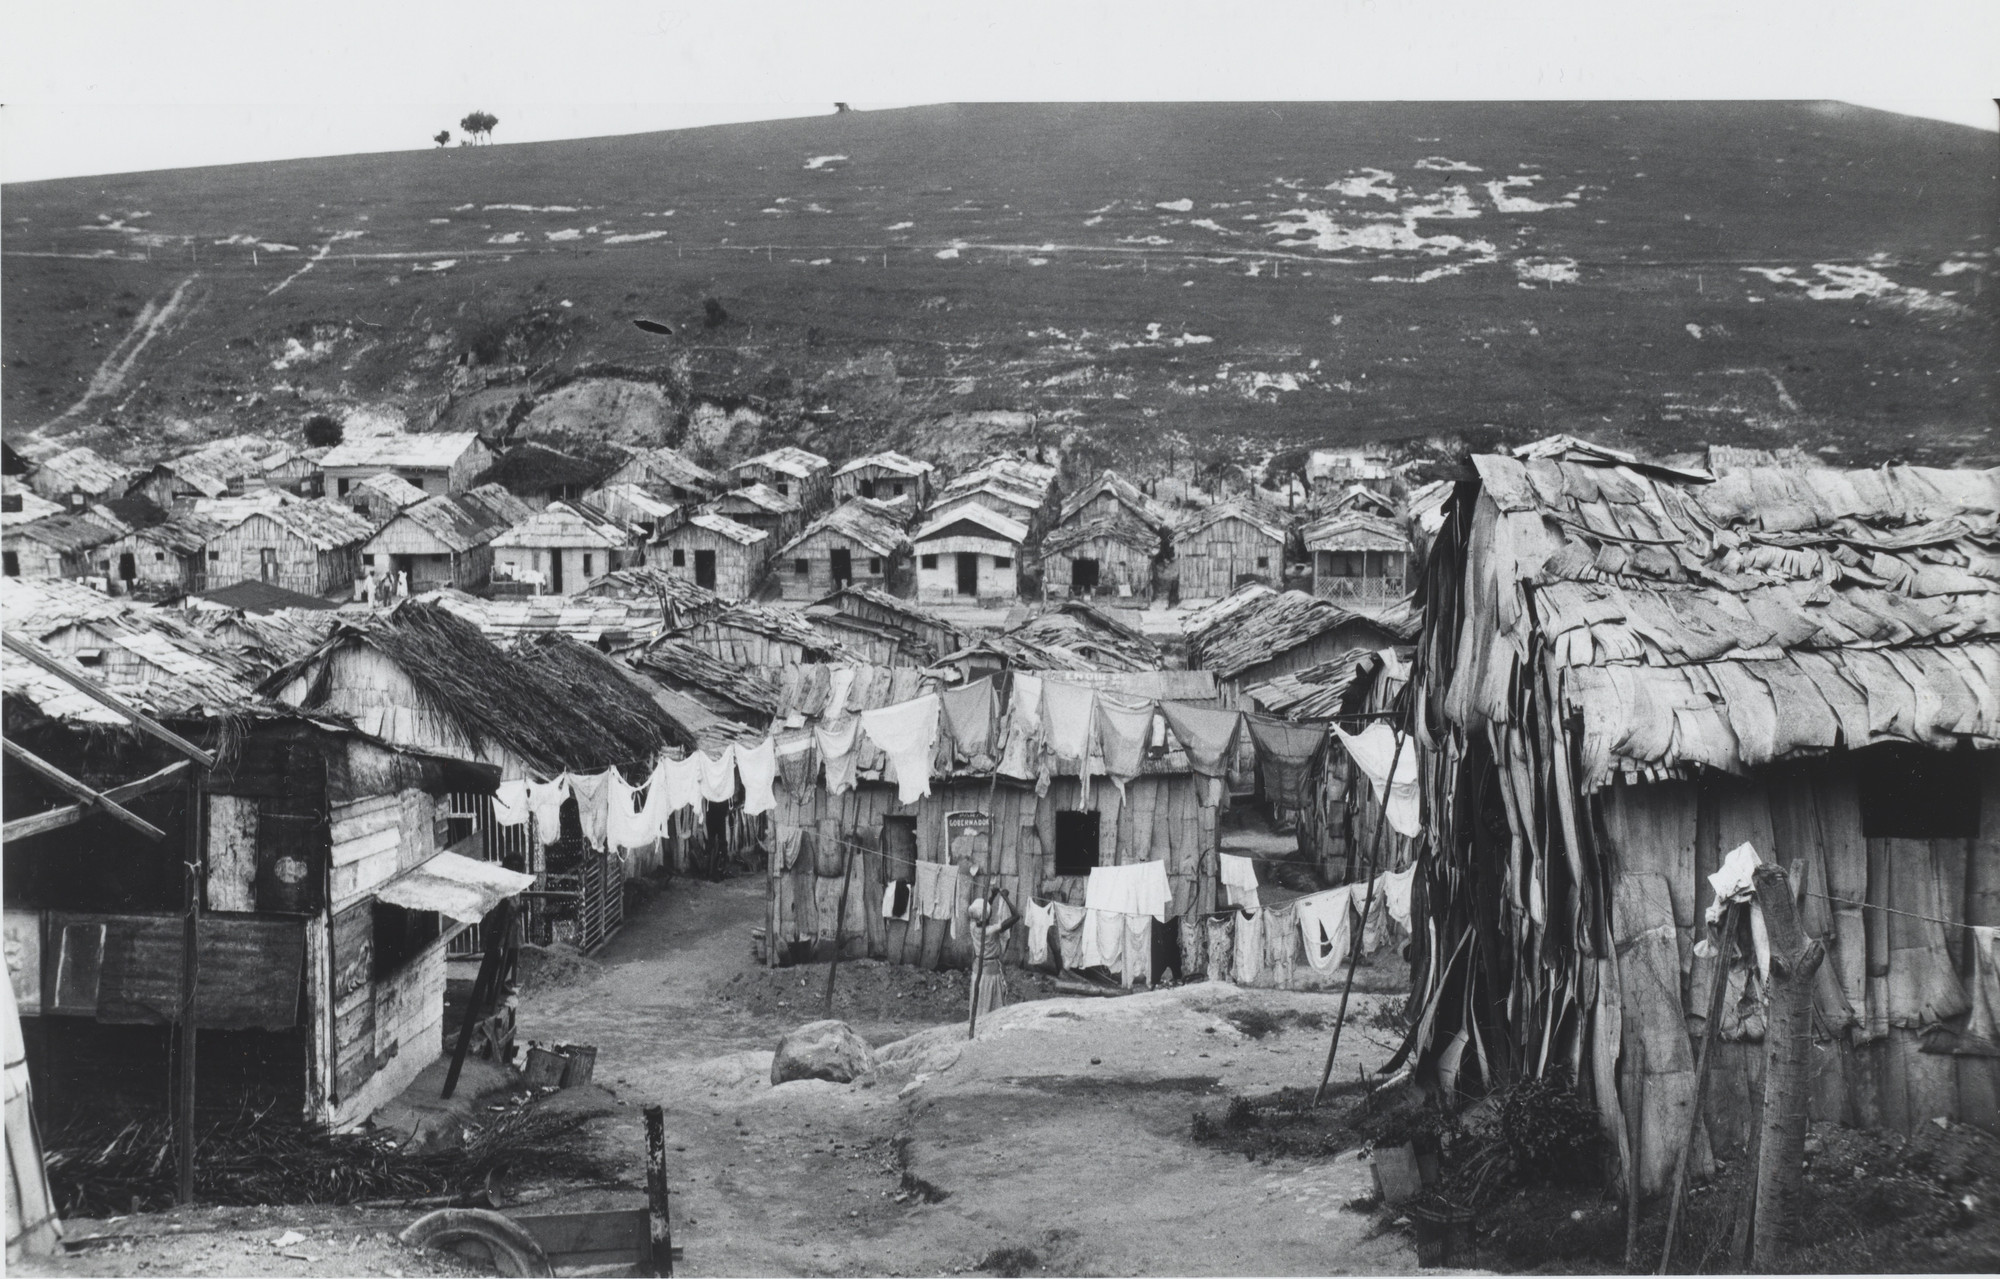 Walker Evans. Squatters' Village. 1933